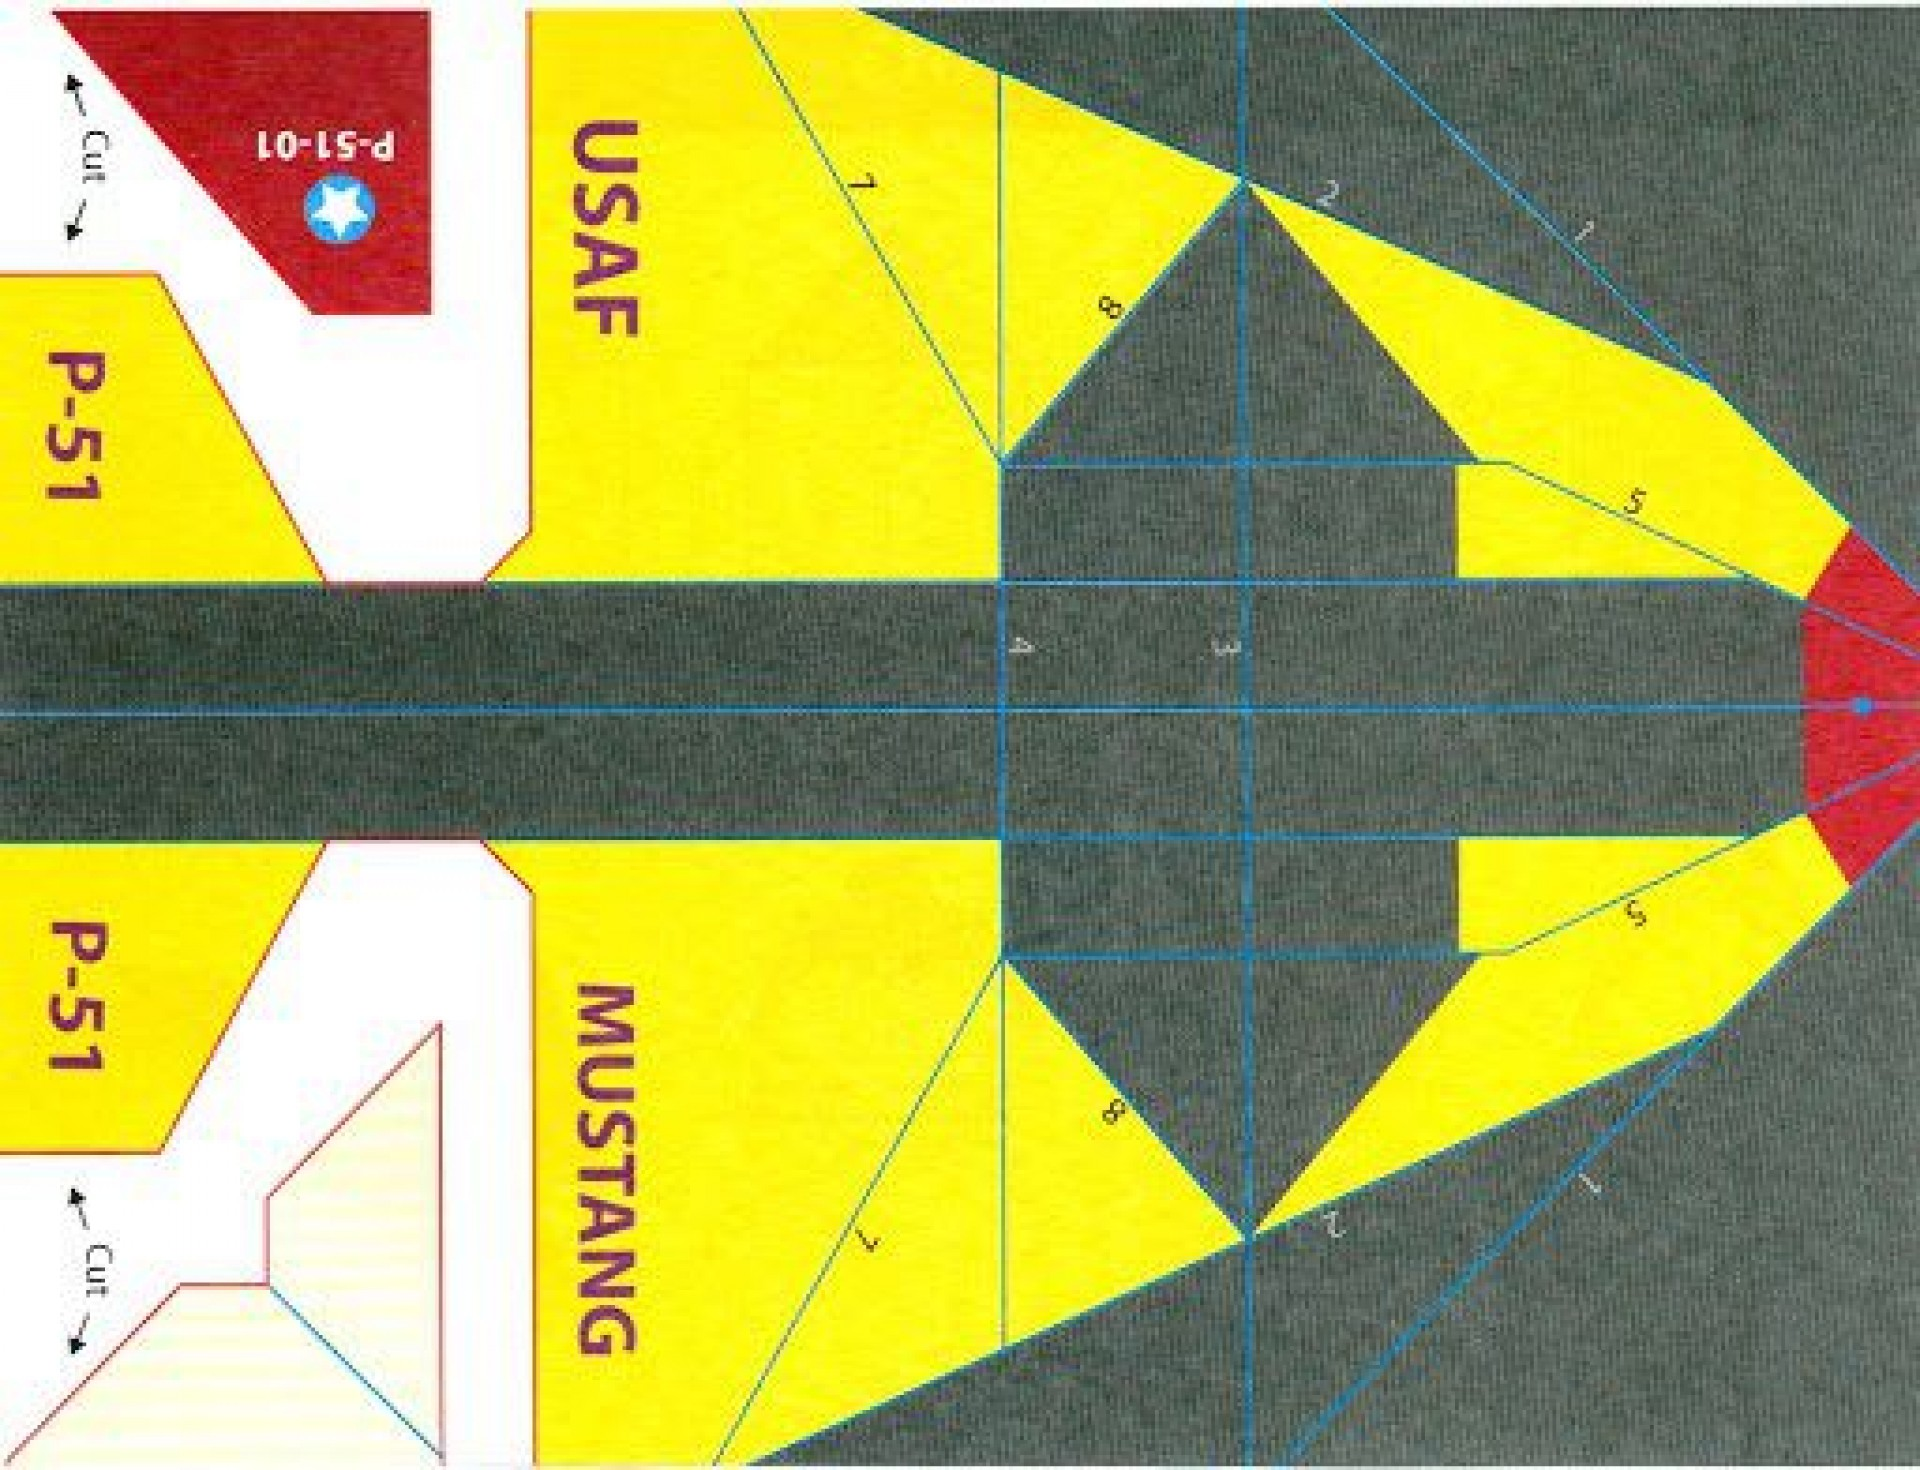 001 Outstanding Printable Paper Plane Template Image  Templates Model Free Airplane Pattern1920